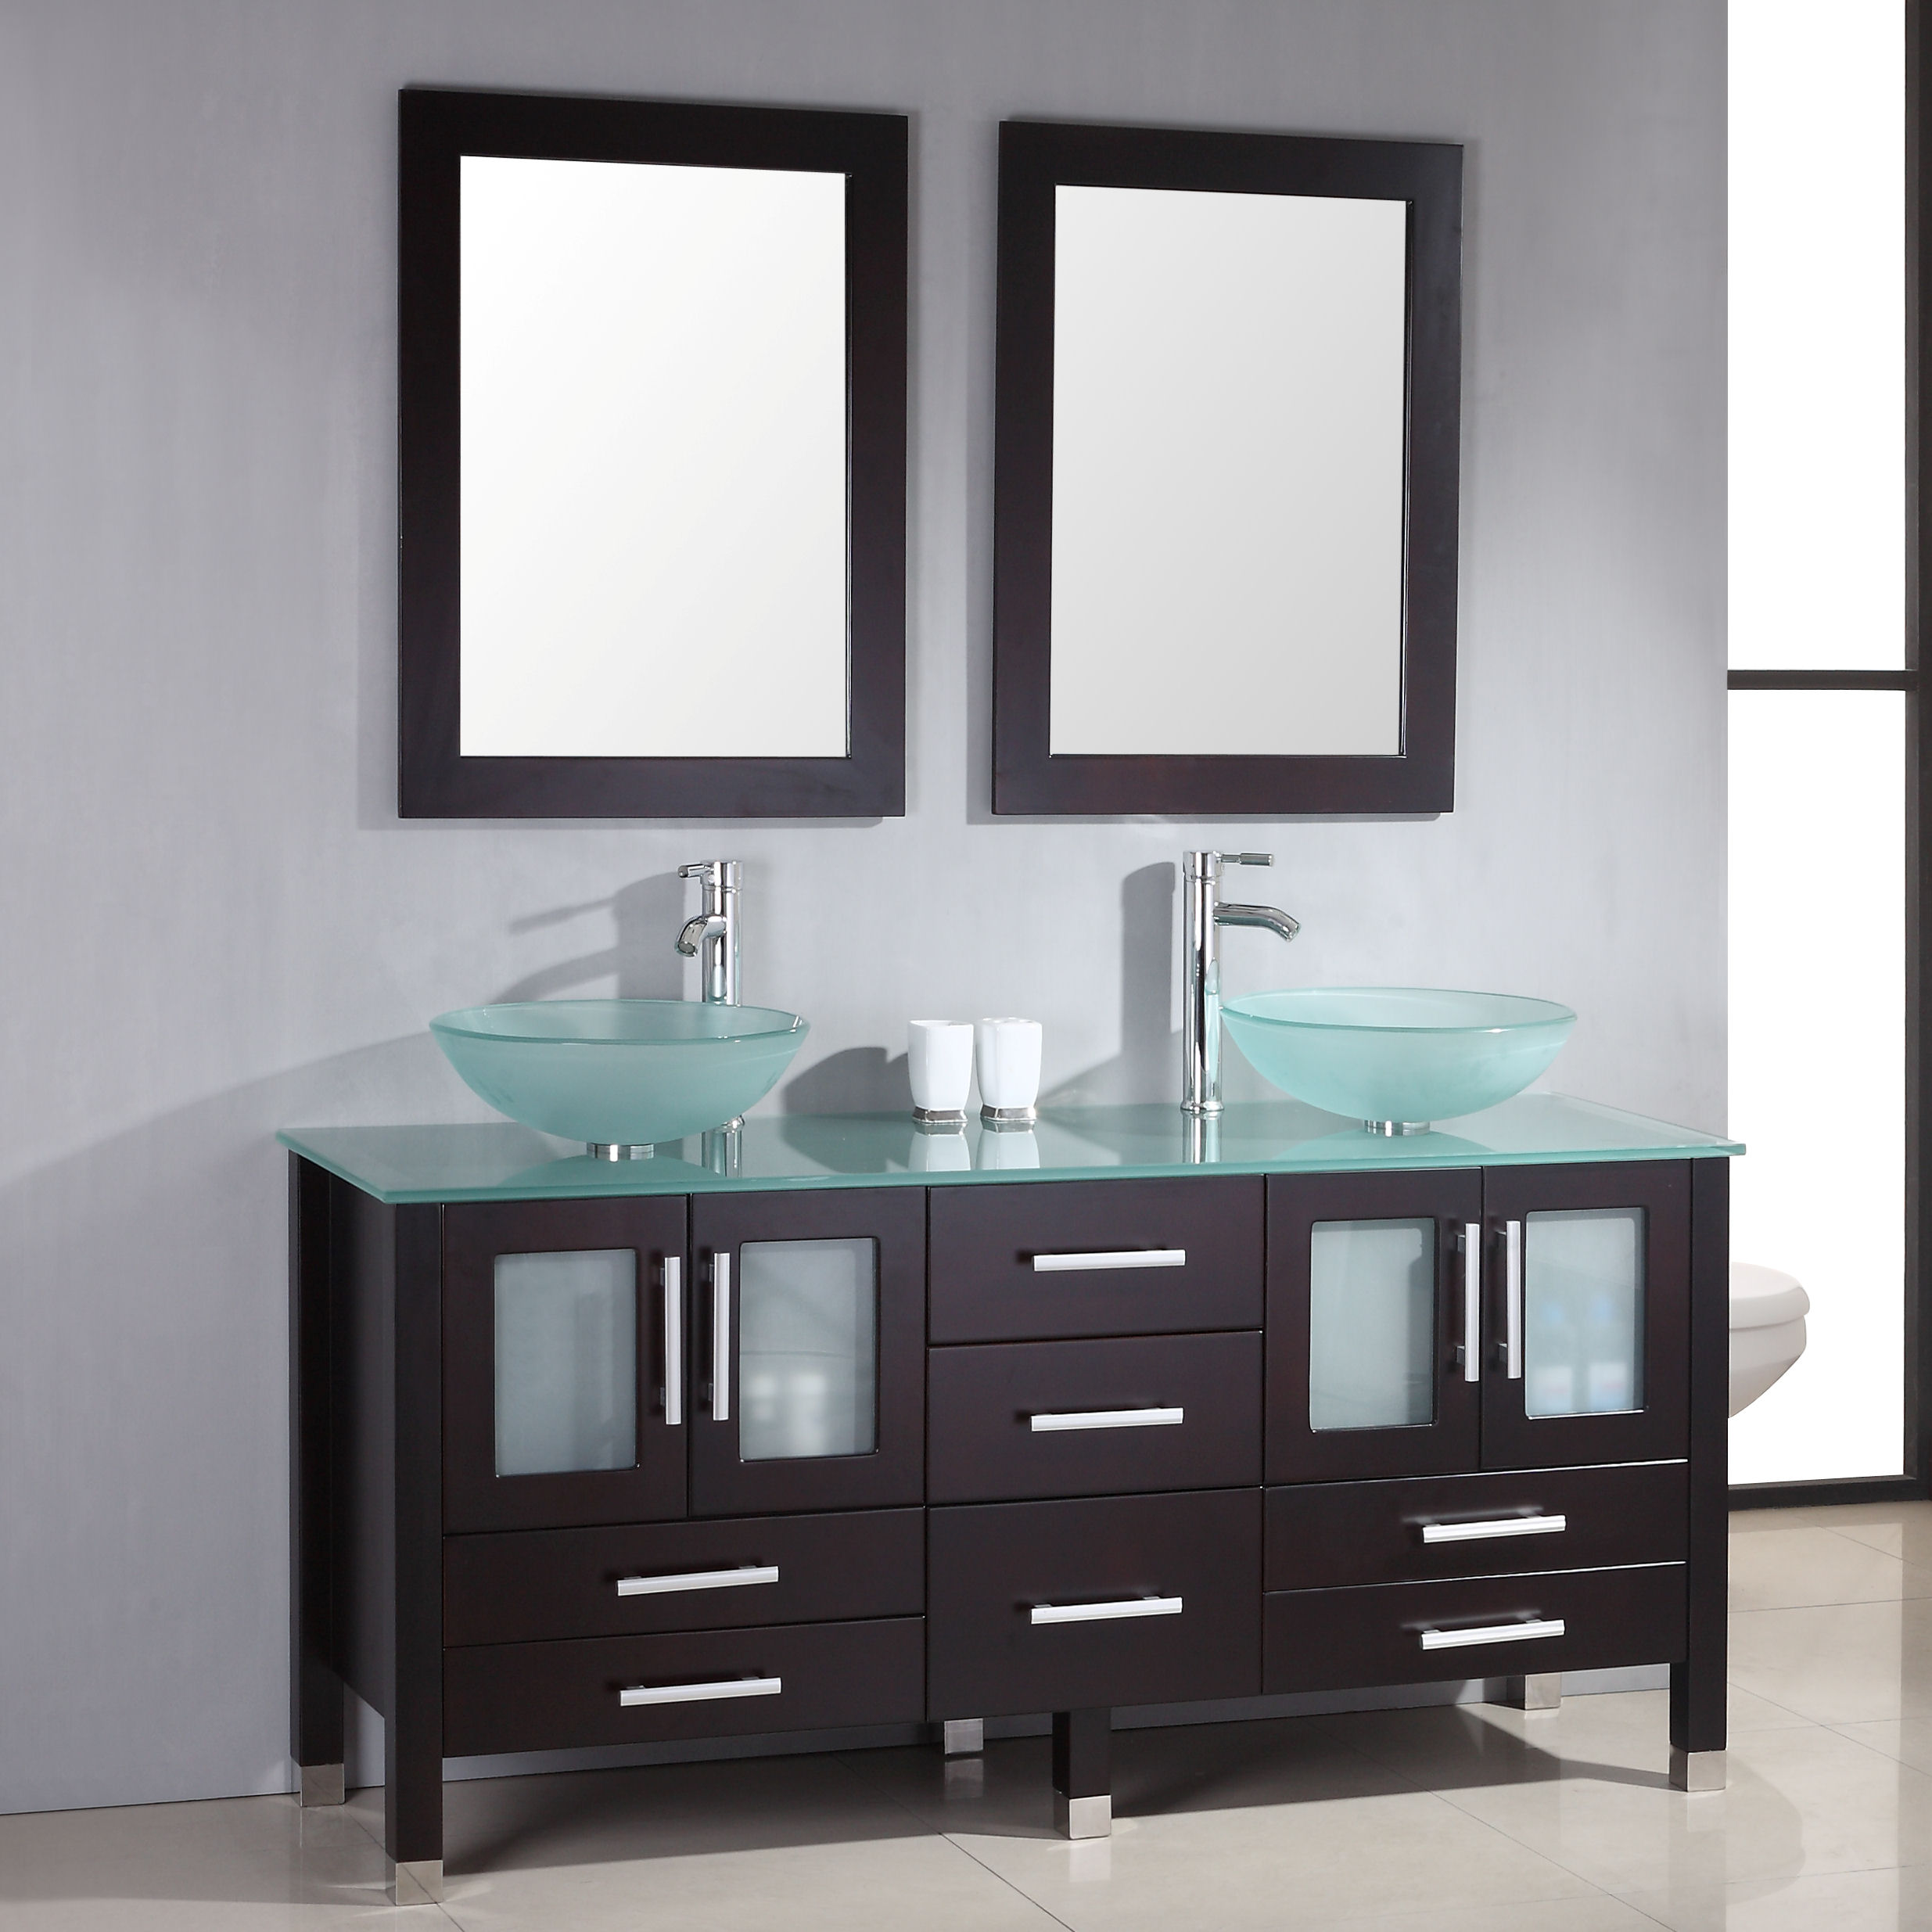 Double sink bathroom vanity tops sale - Cambridge 71 Inch Glass Double Vessel Vanity